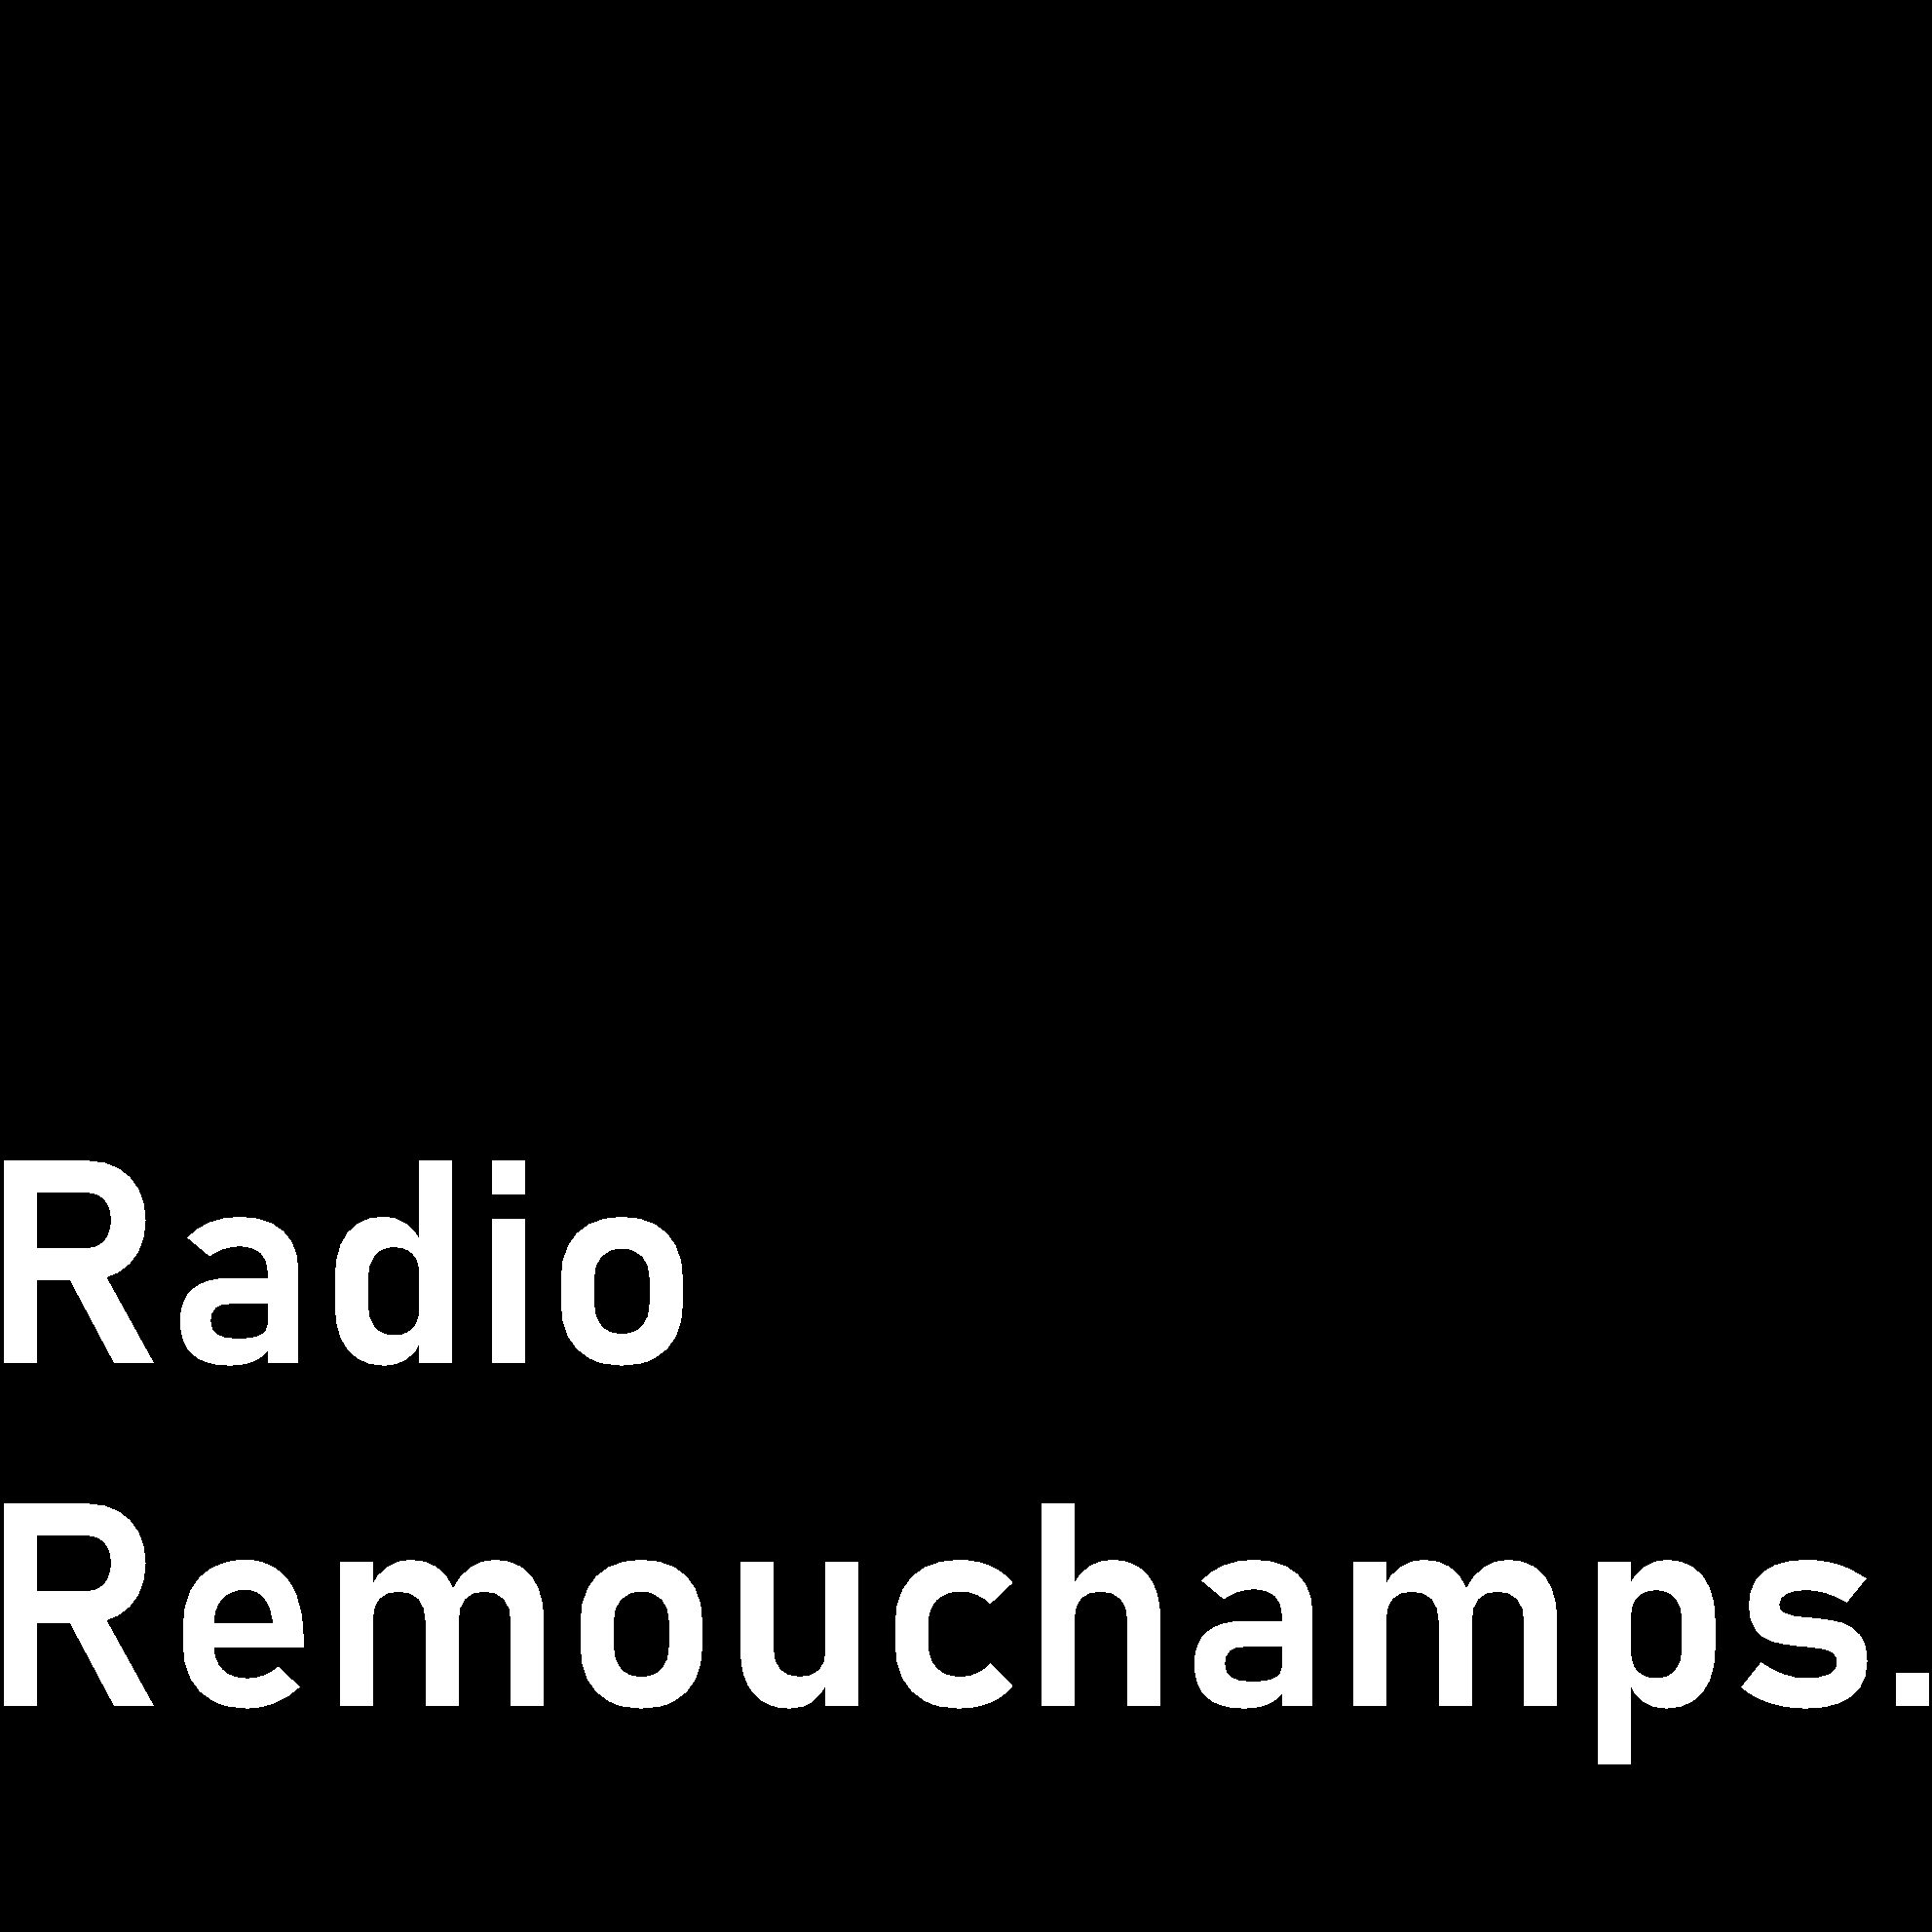 Radio Remouchamps